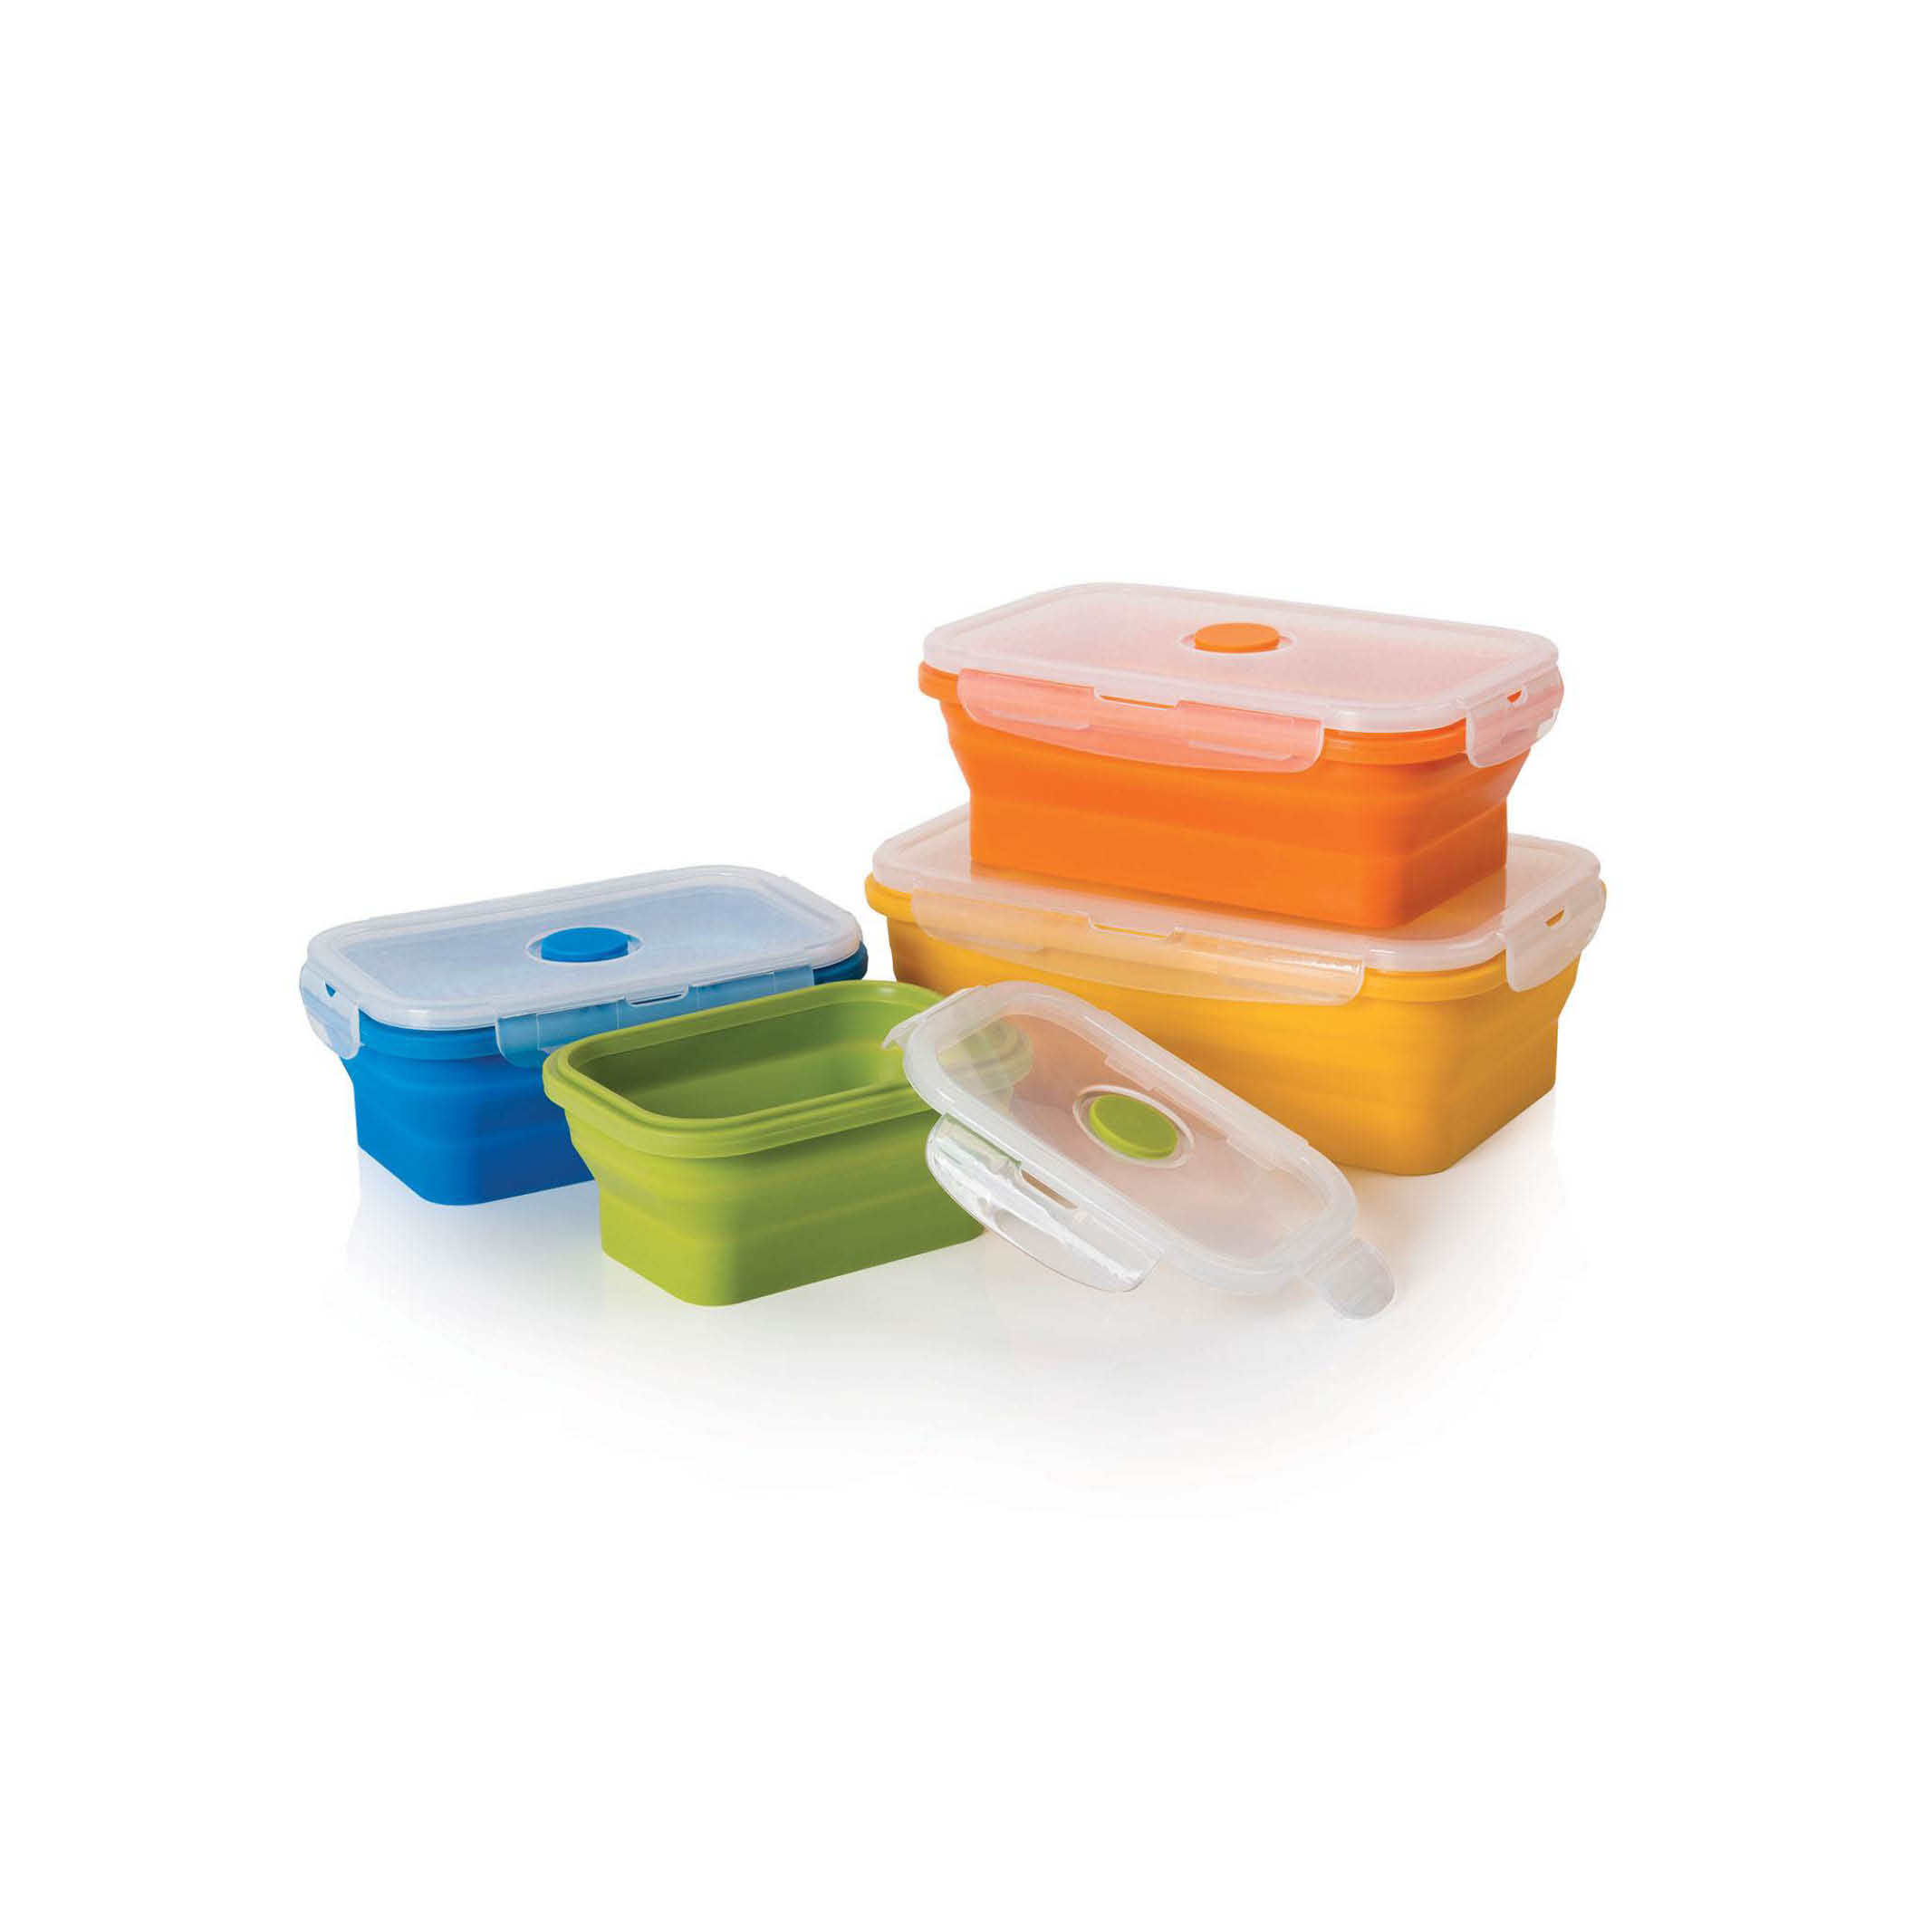 Food & drink containers